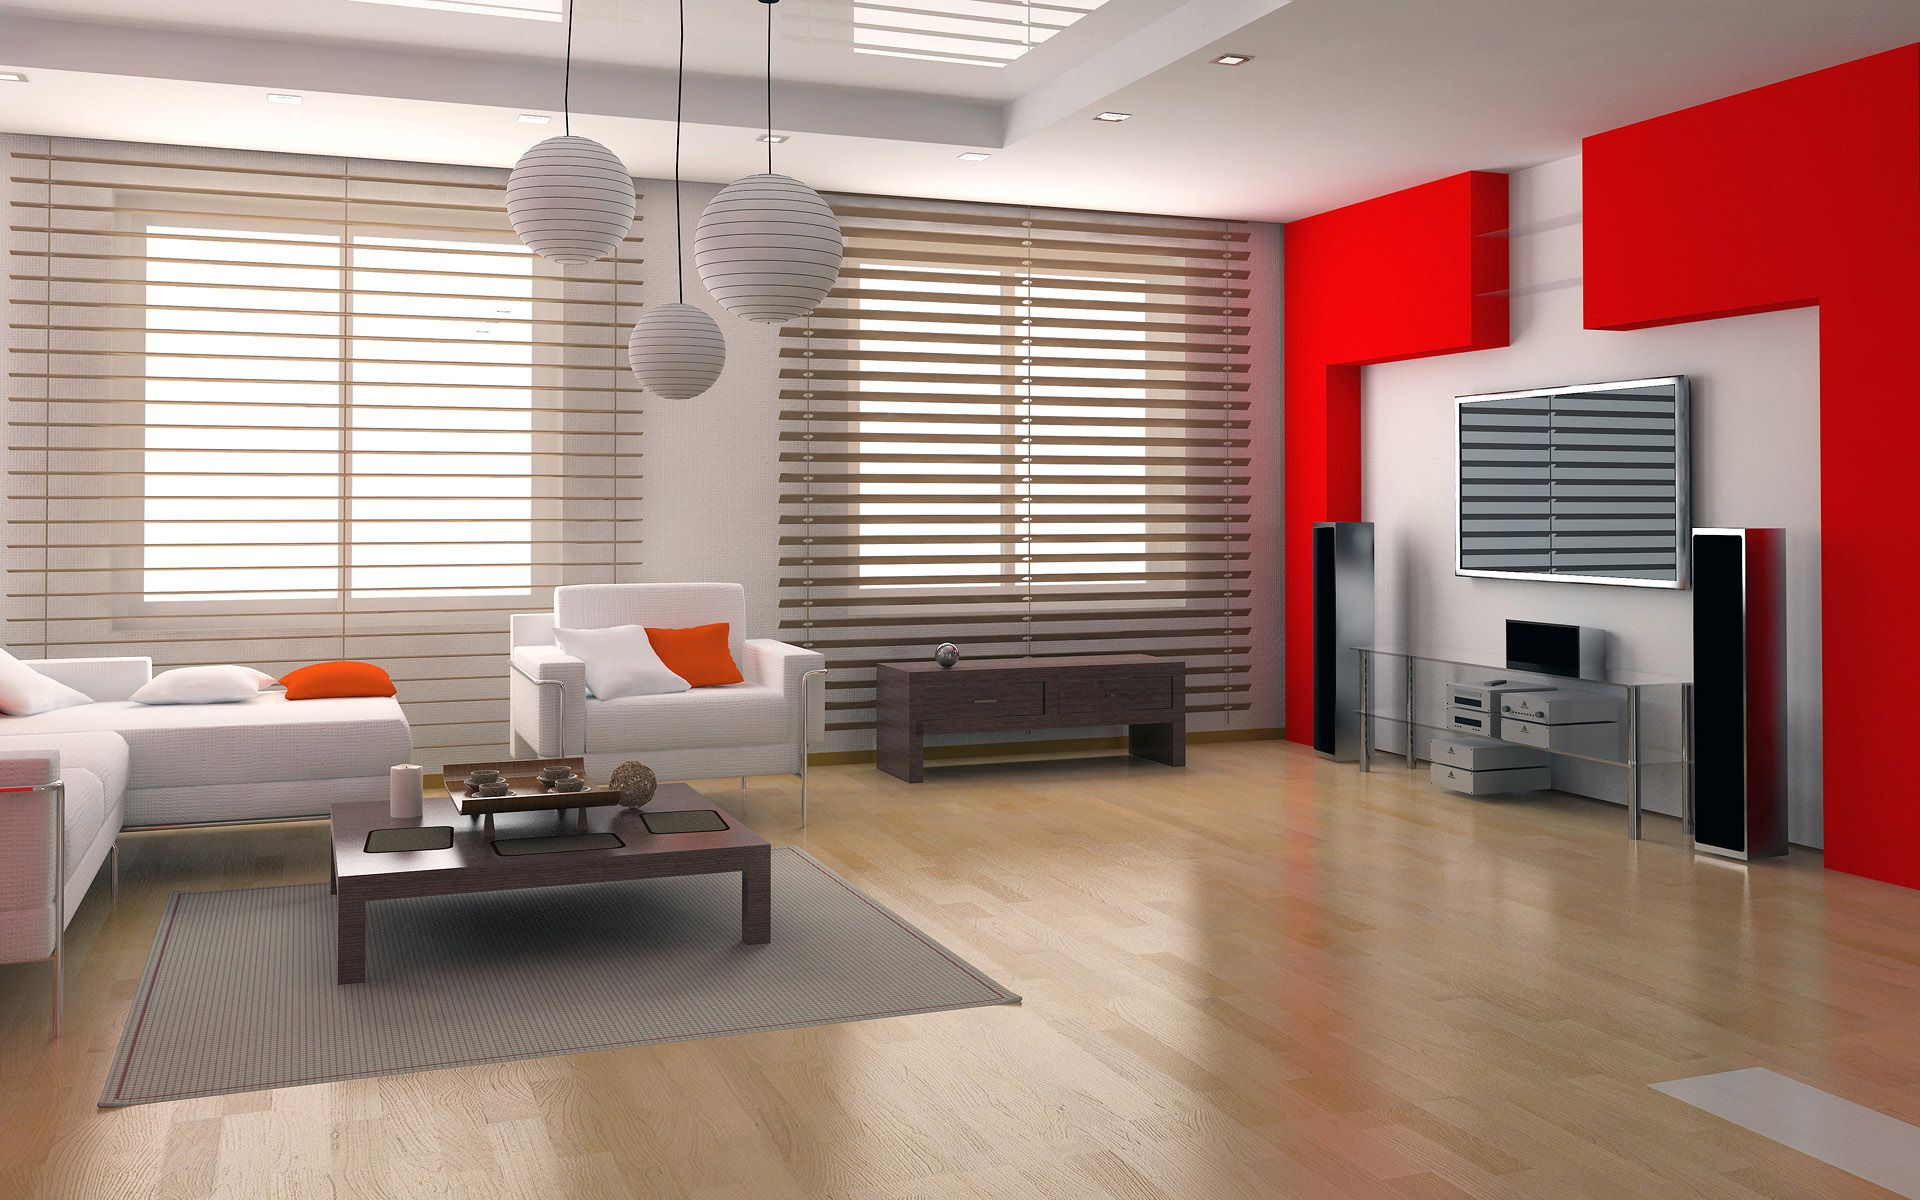 Modern living room background - Red And White Living Room Ideas The Colors Combination Always Interesting To Try In Our House Due To Houseofimagine Has Never Showed The Reader Red And